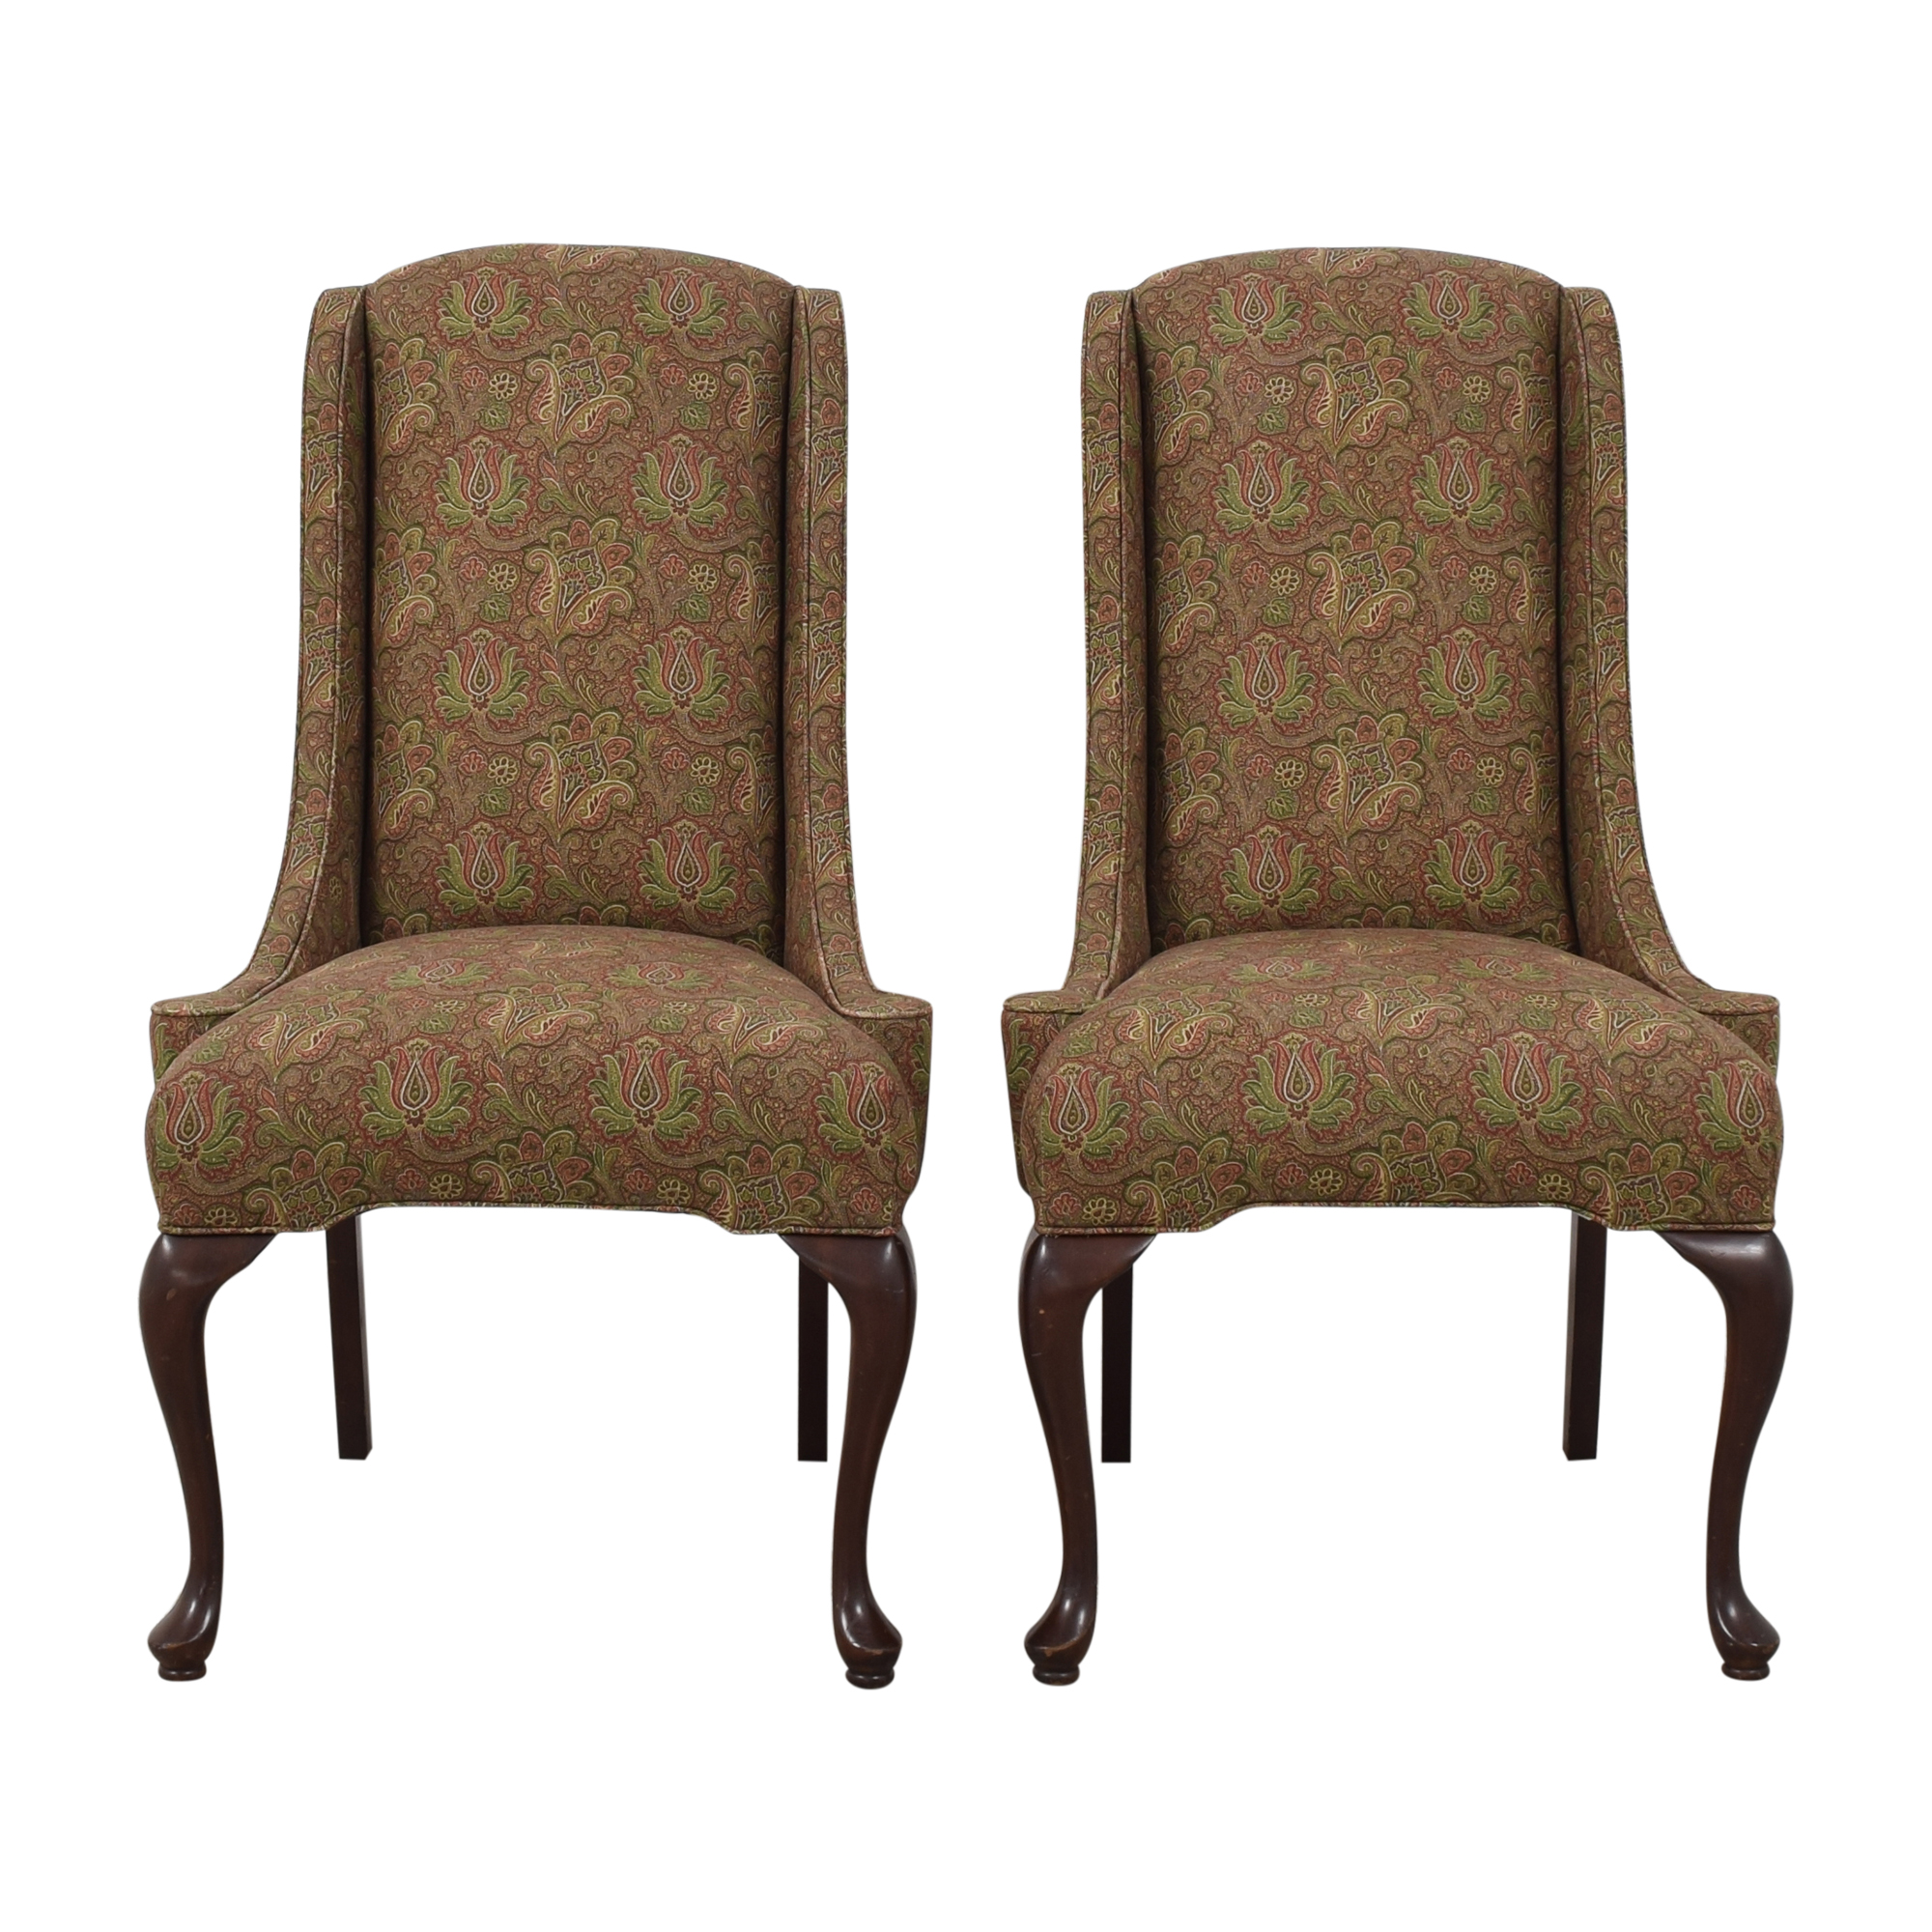 Harden Harden Dining Host Chairs Chairs